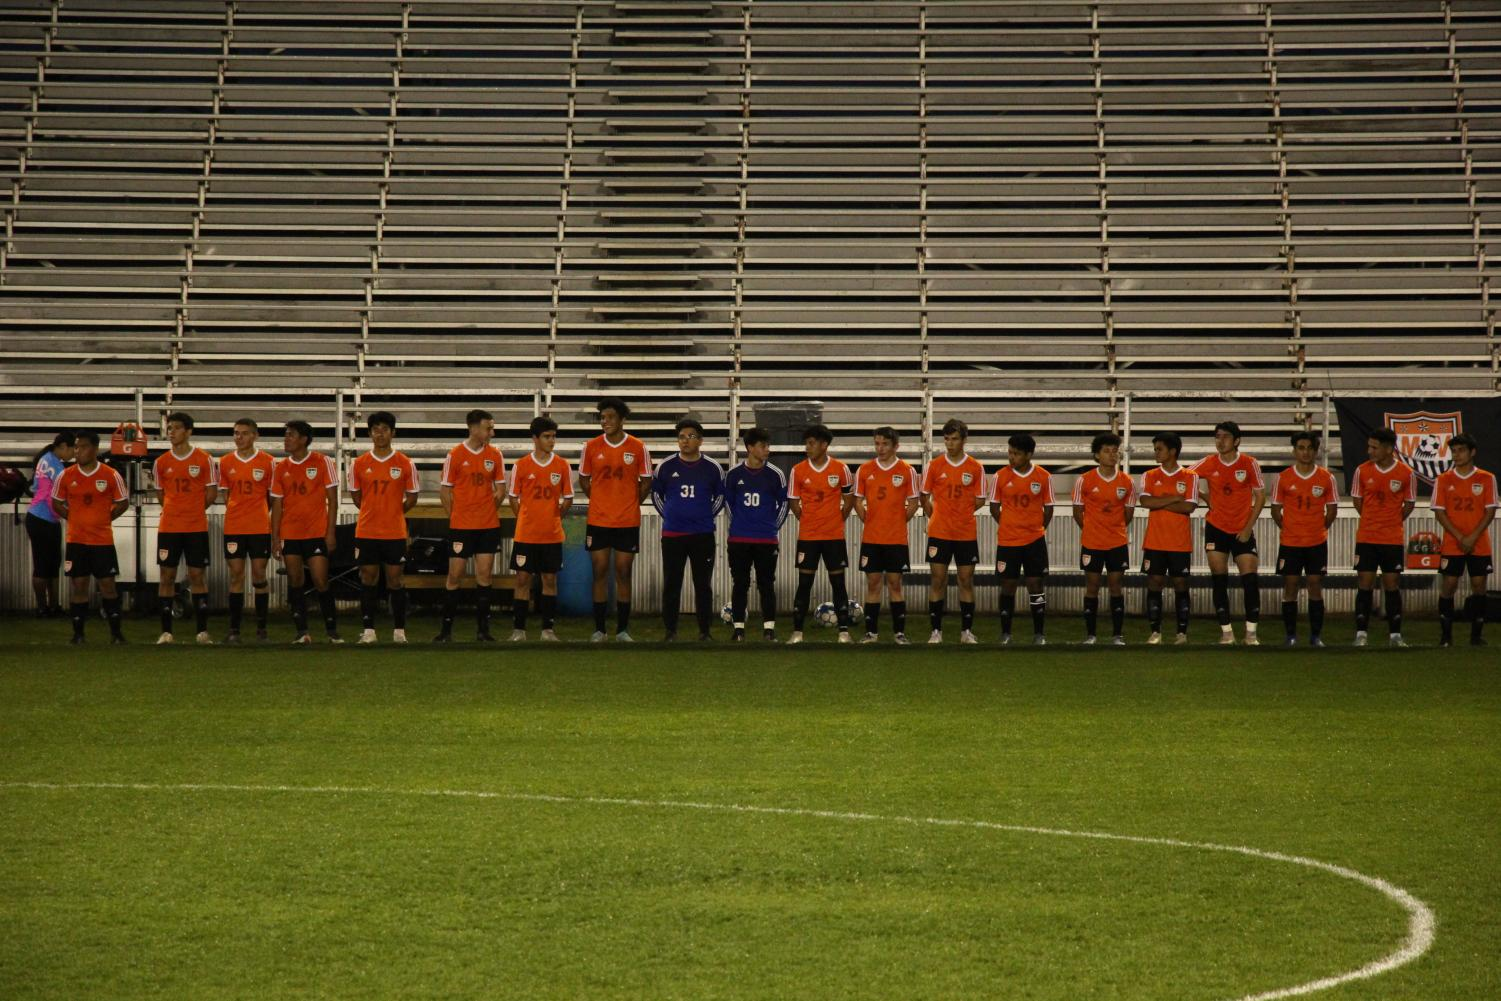 The team lines up before the game on Feb 4